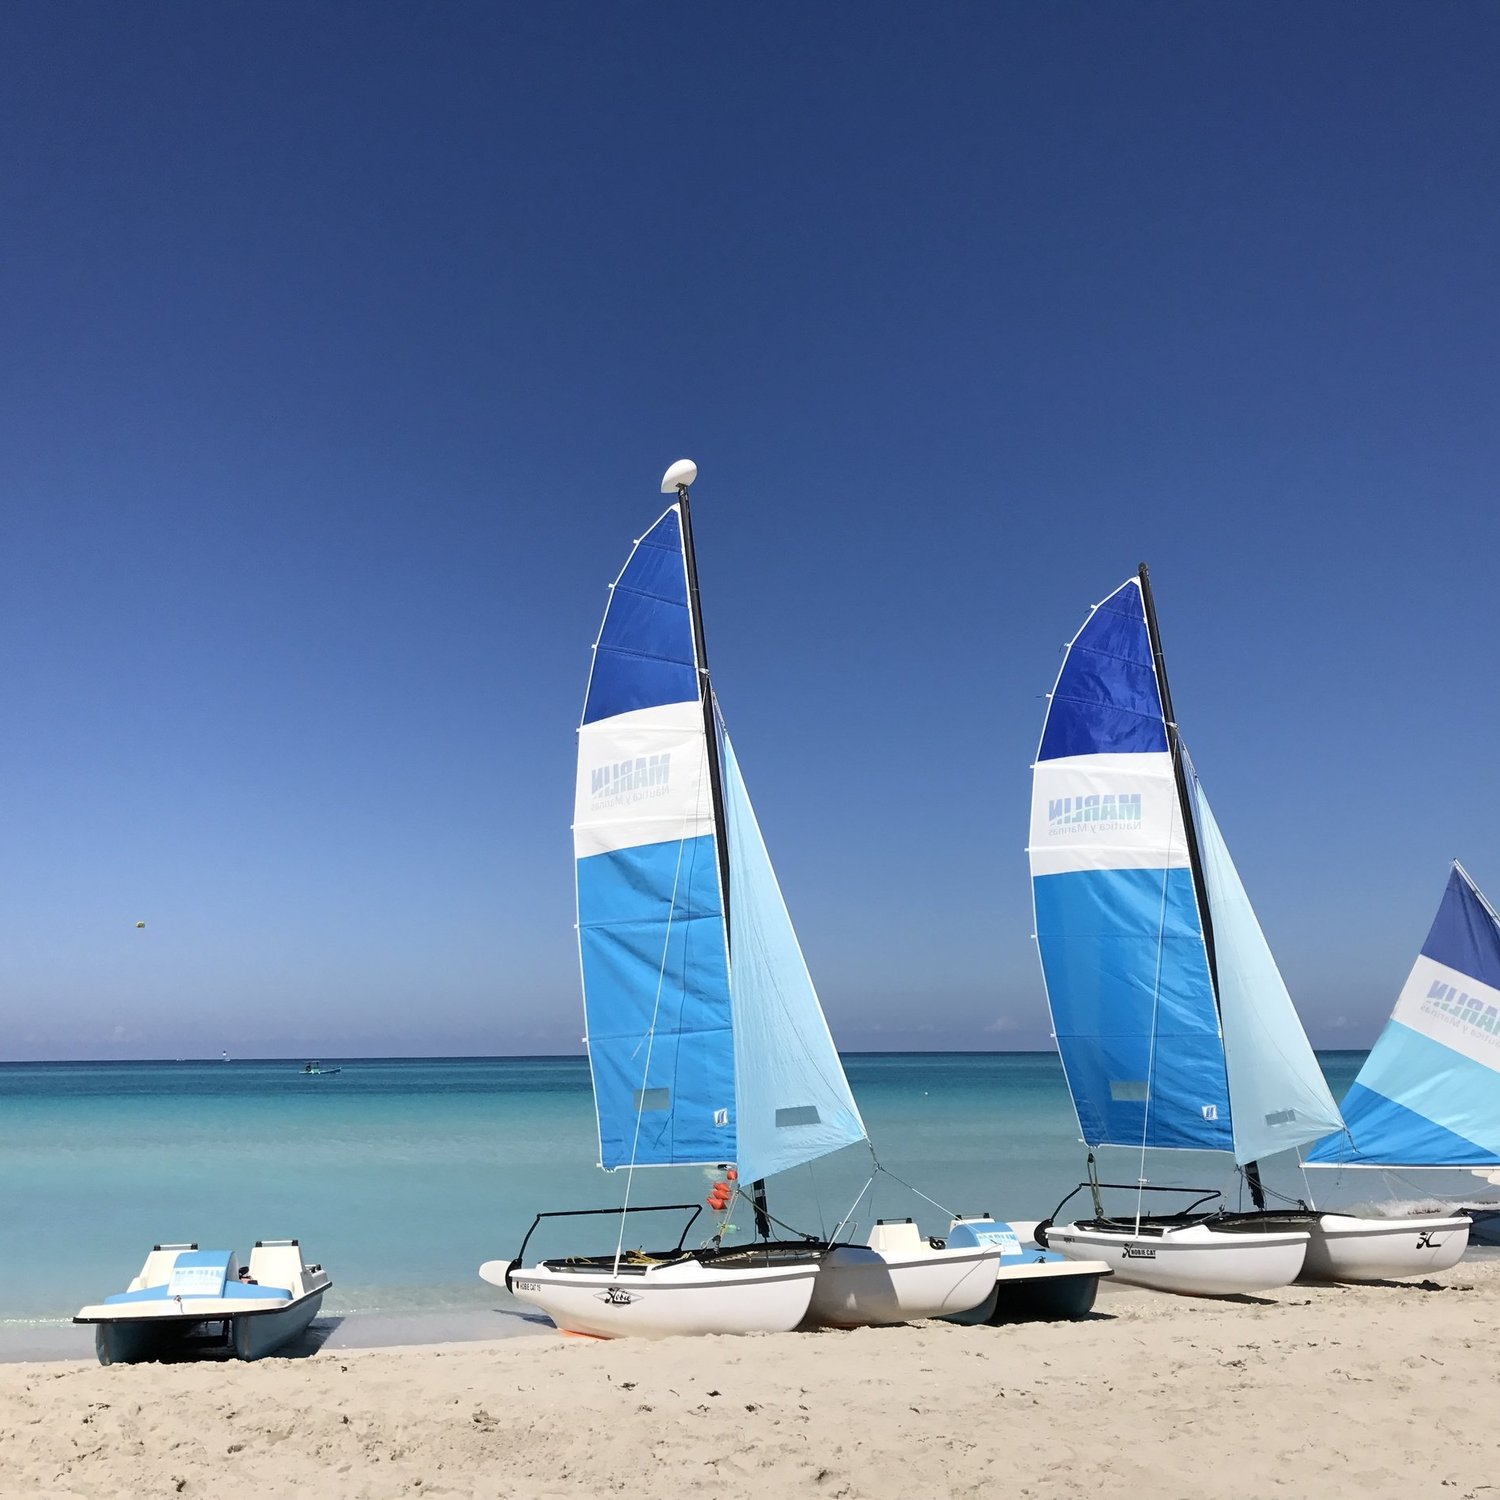 Cuba Part III: Relaxing on the Beach in Varadero